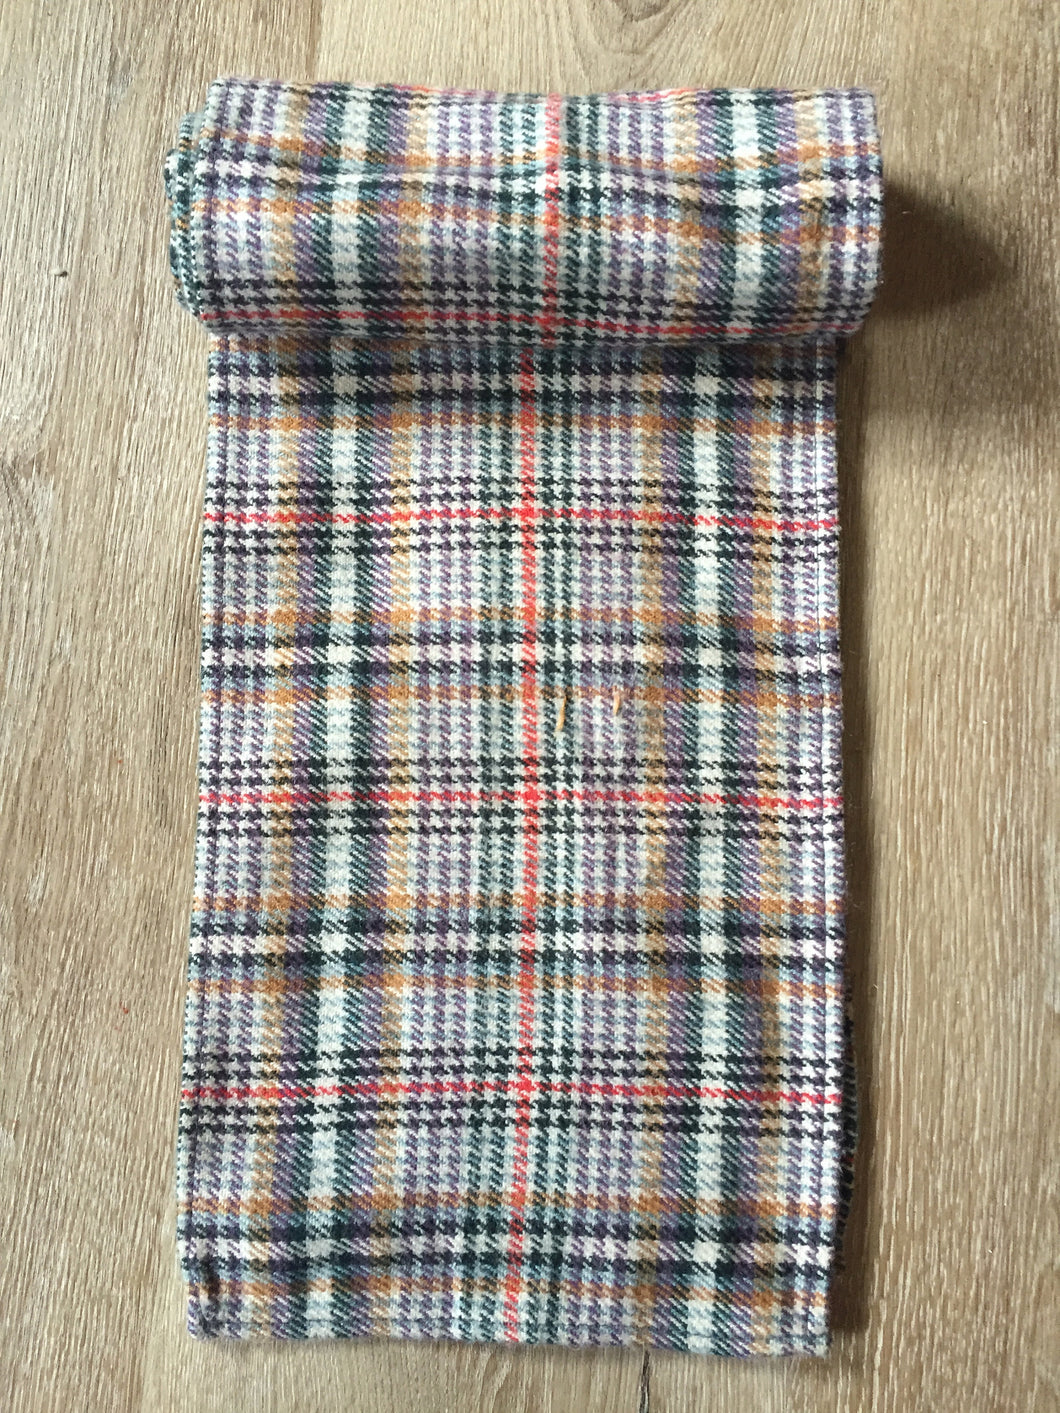 Kingspier Vintage - Multi-coloured plaid scarf. Wool blend, measures 7x56 inches.